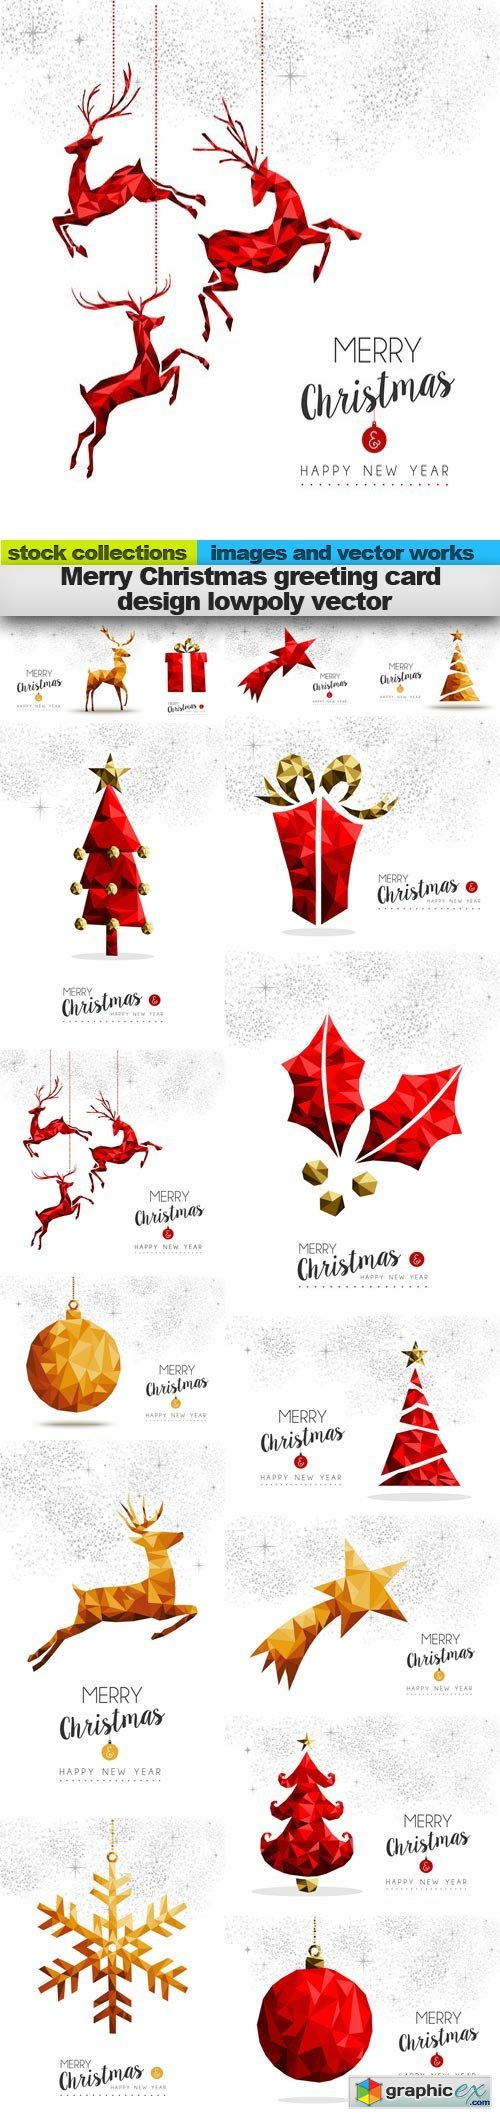 Merry Christmas greeting card design lowpoly vector, 15 x EPS